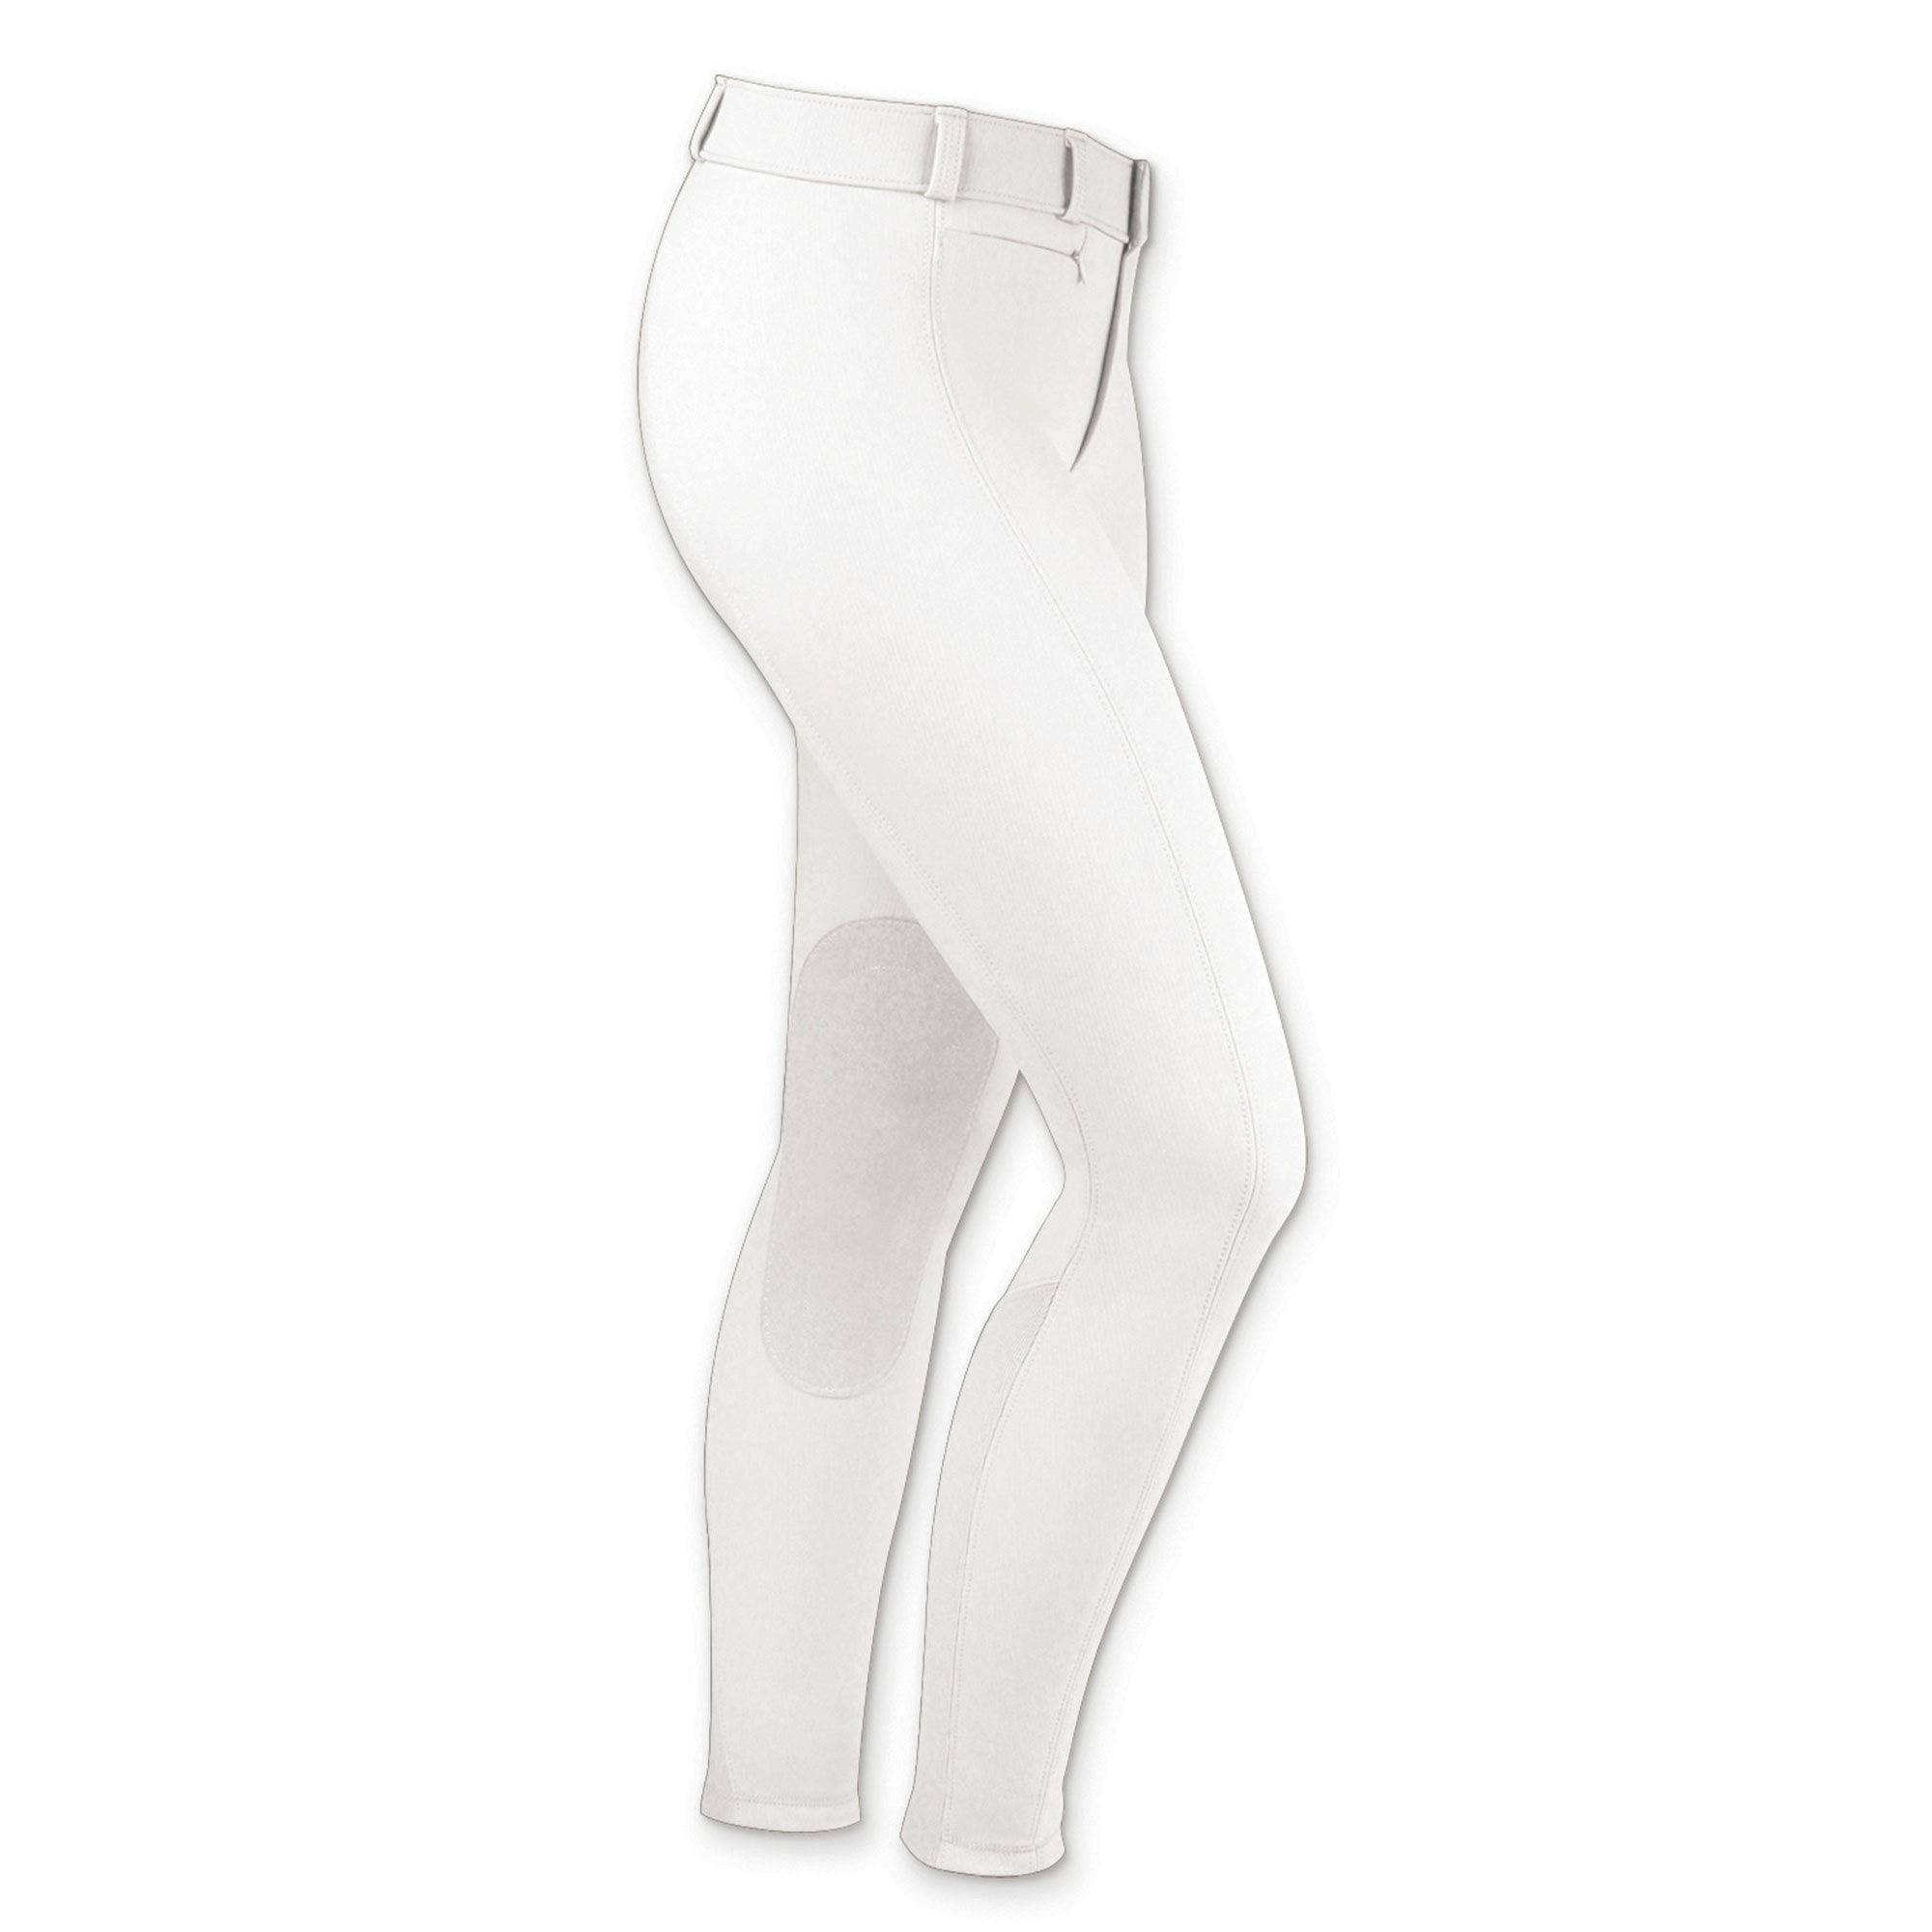 Irideon Ladies' Courdelay Full Seat Breech